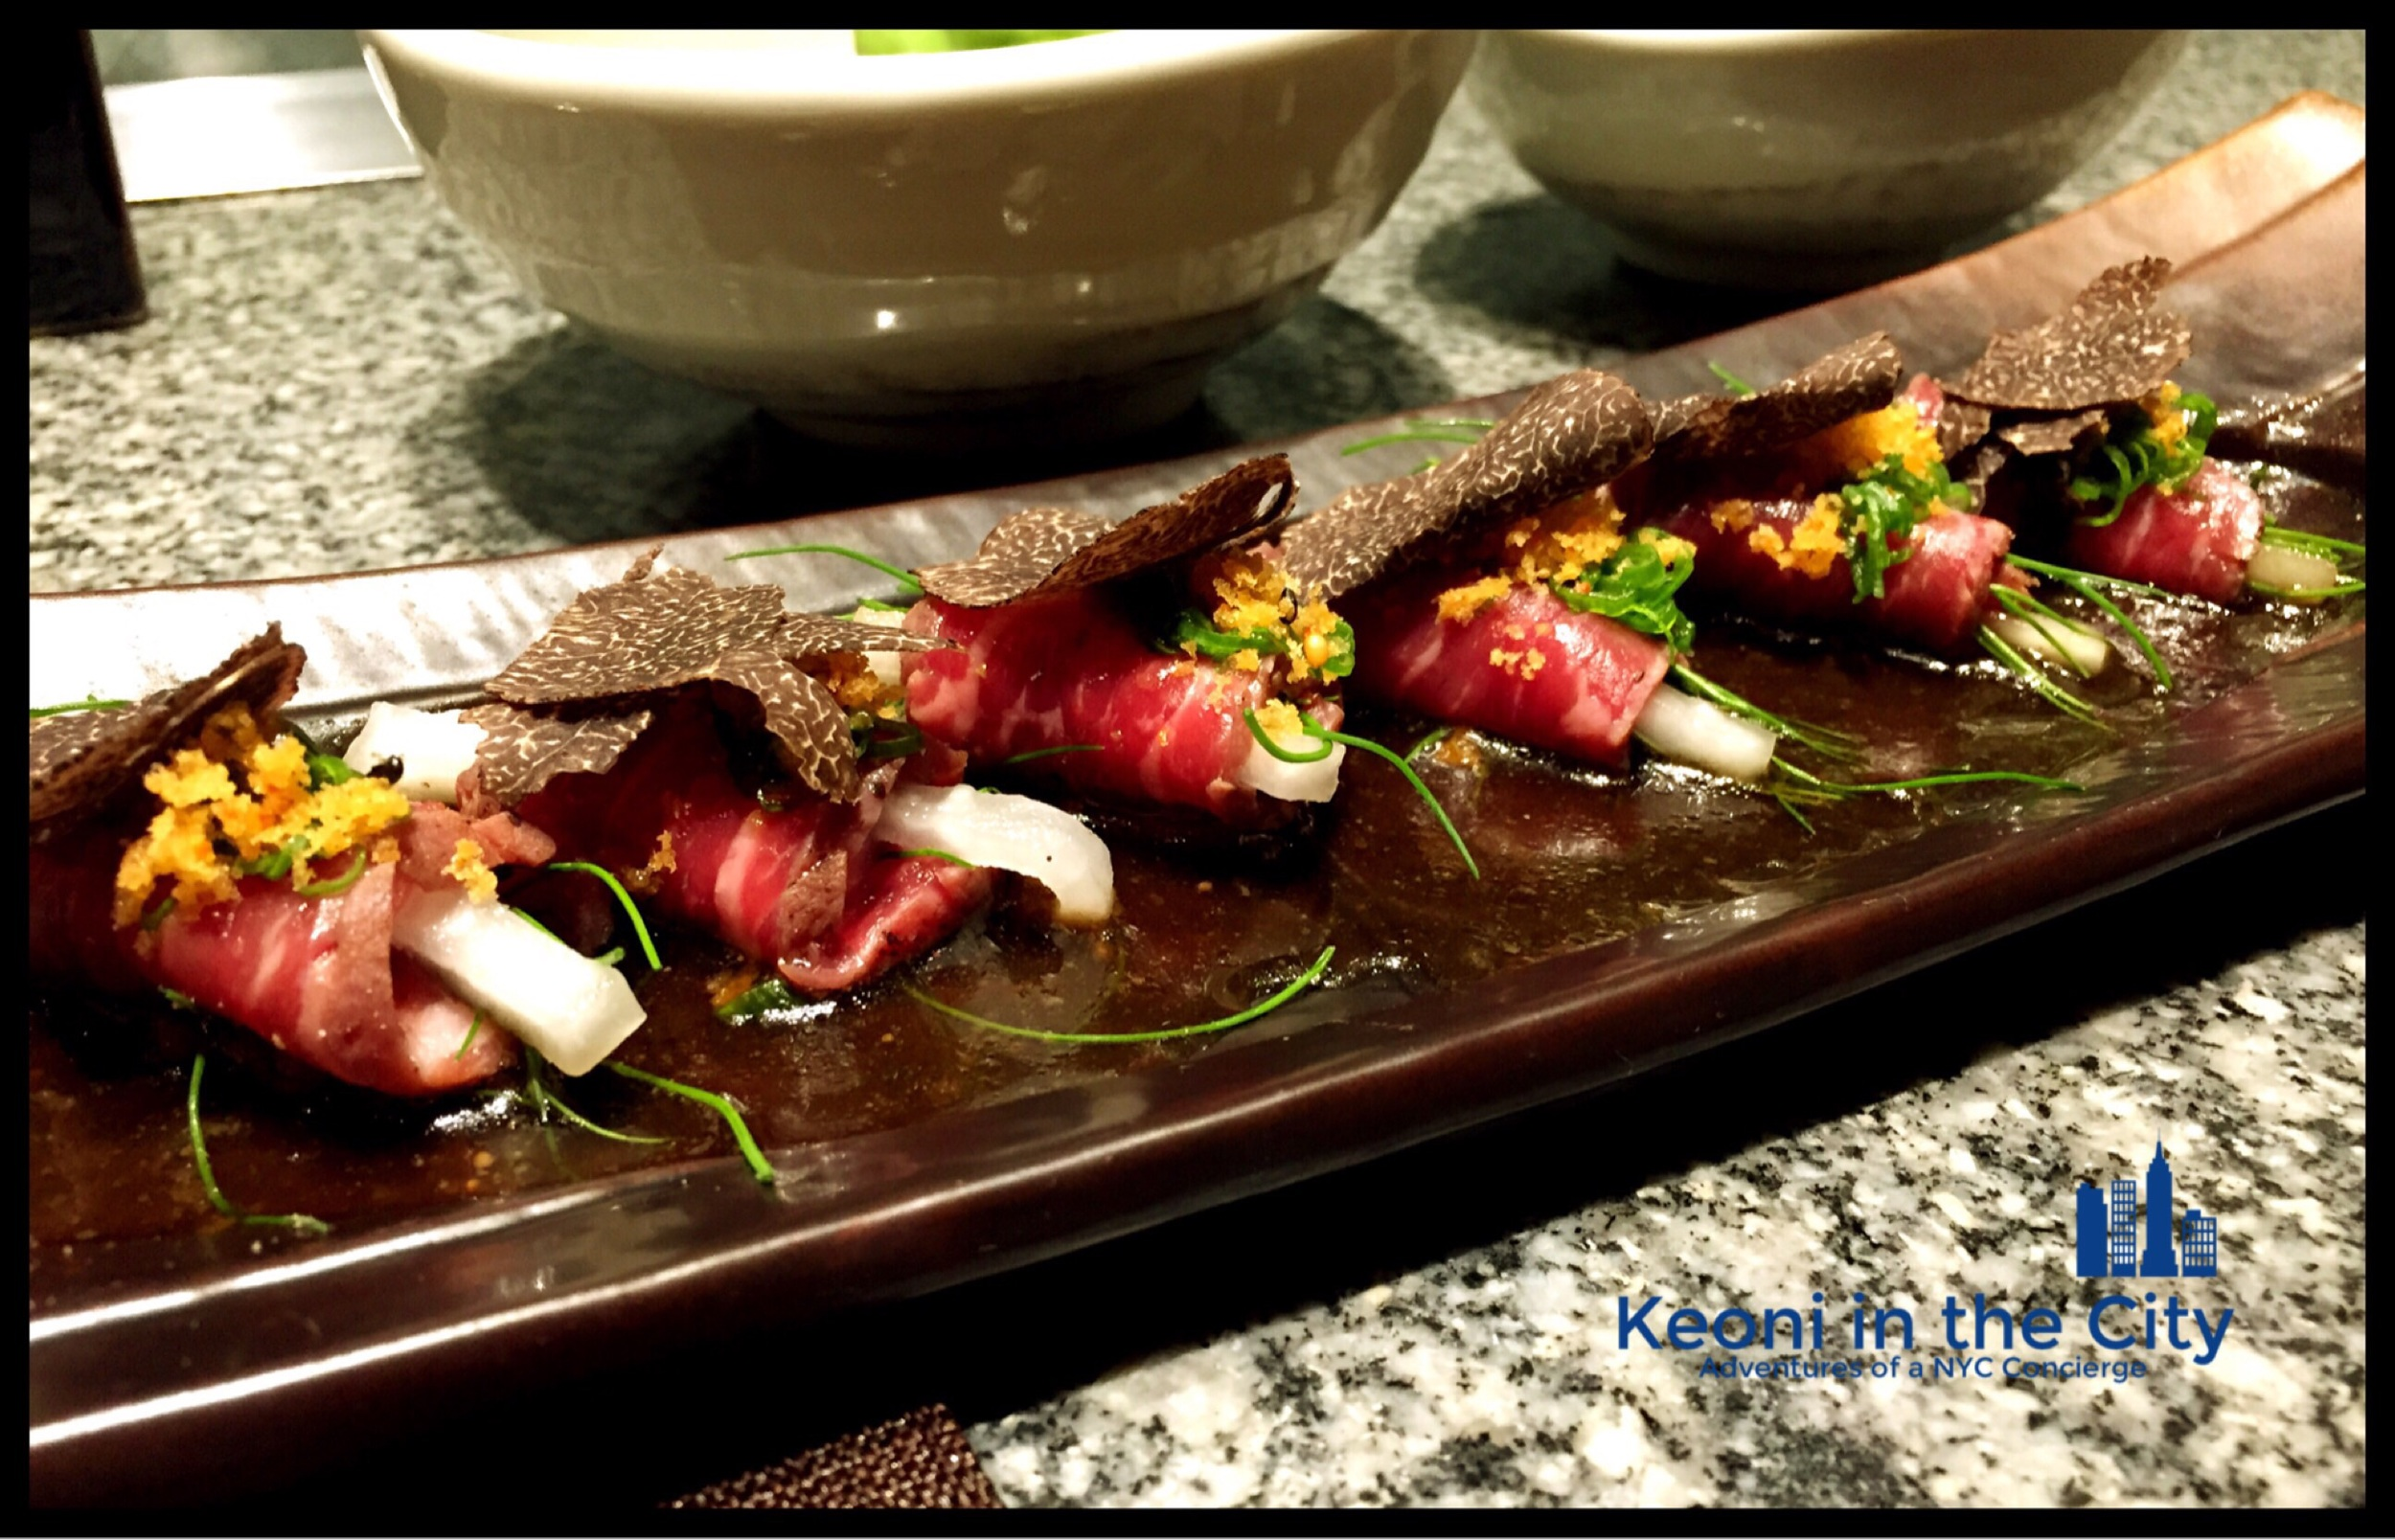 Beef  tataki  with pickled daikon and truffles